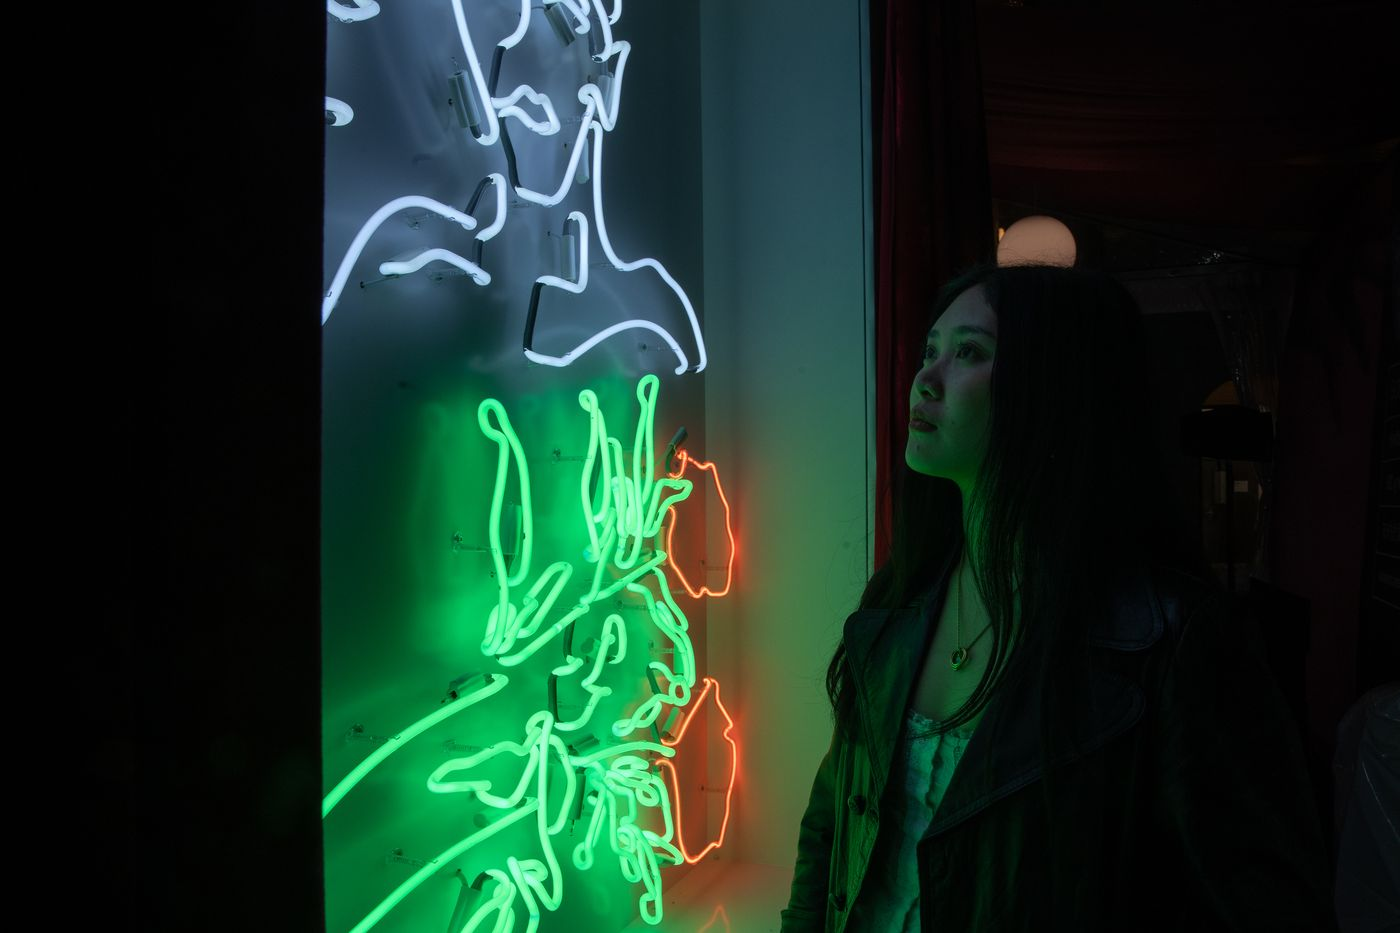 We sat down with the British painter to find out more about her recently commissioned work for the British Council of Hong Kong's SPARK Festival, her first foray into working with neon.